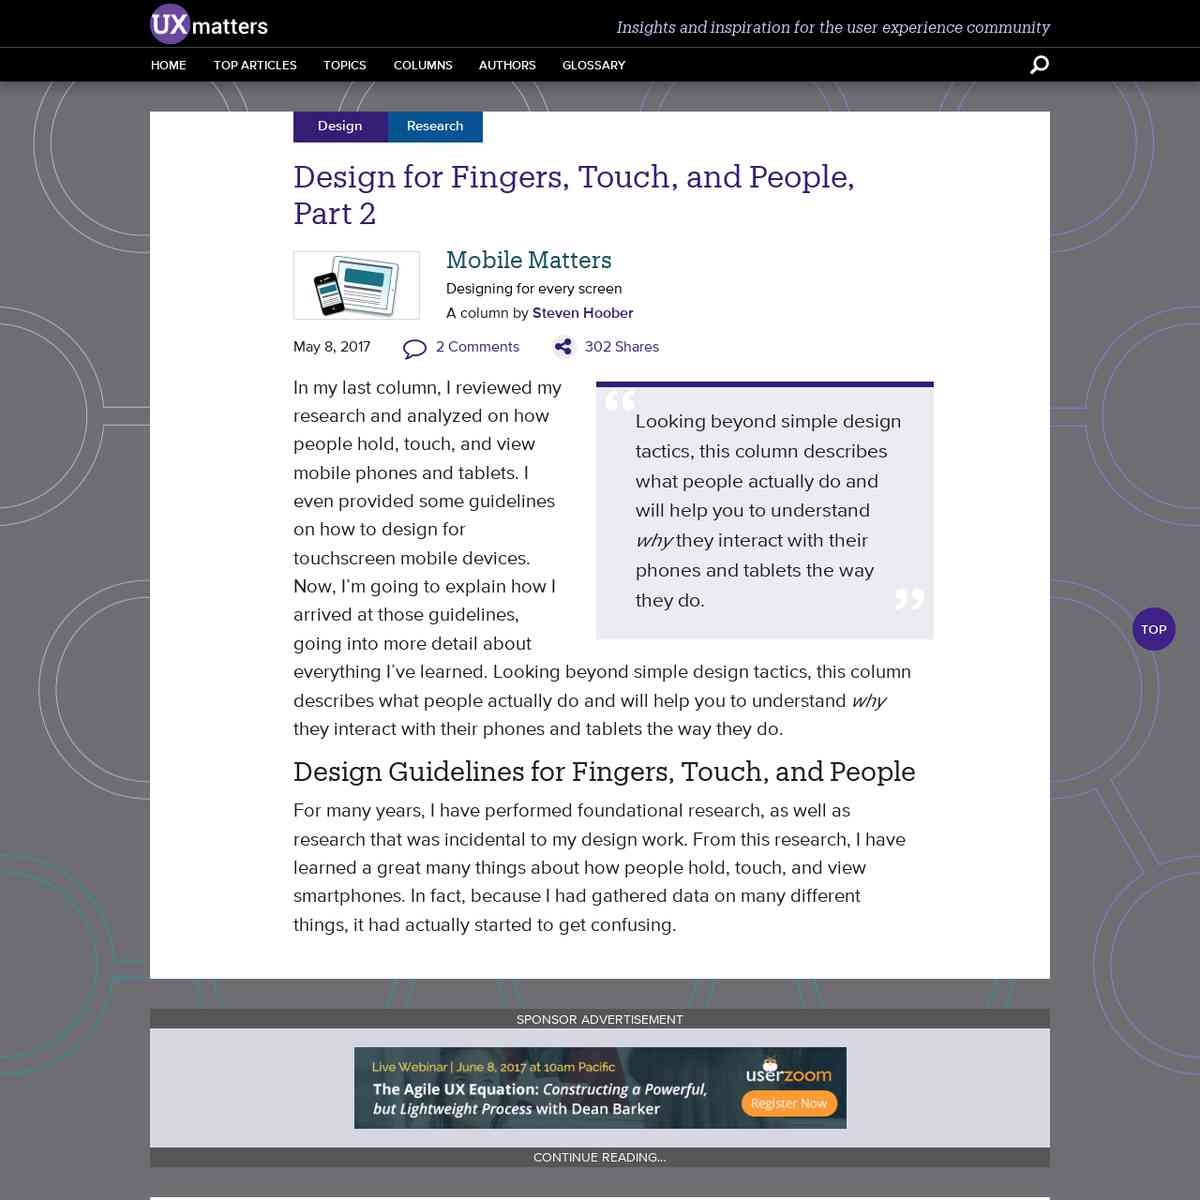 Design for Fingers, Touch, and People, Part 2 :: UXmatters